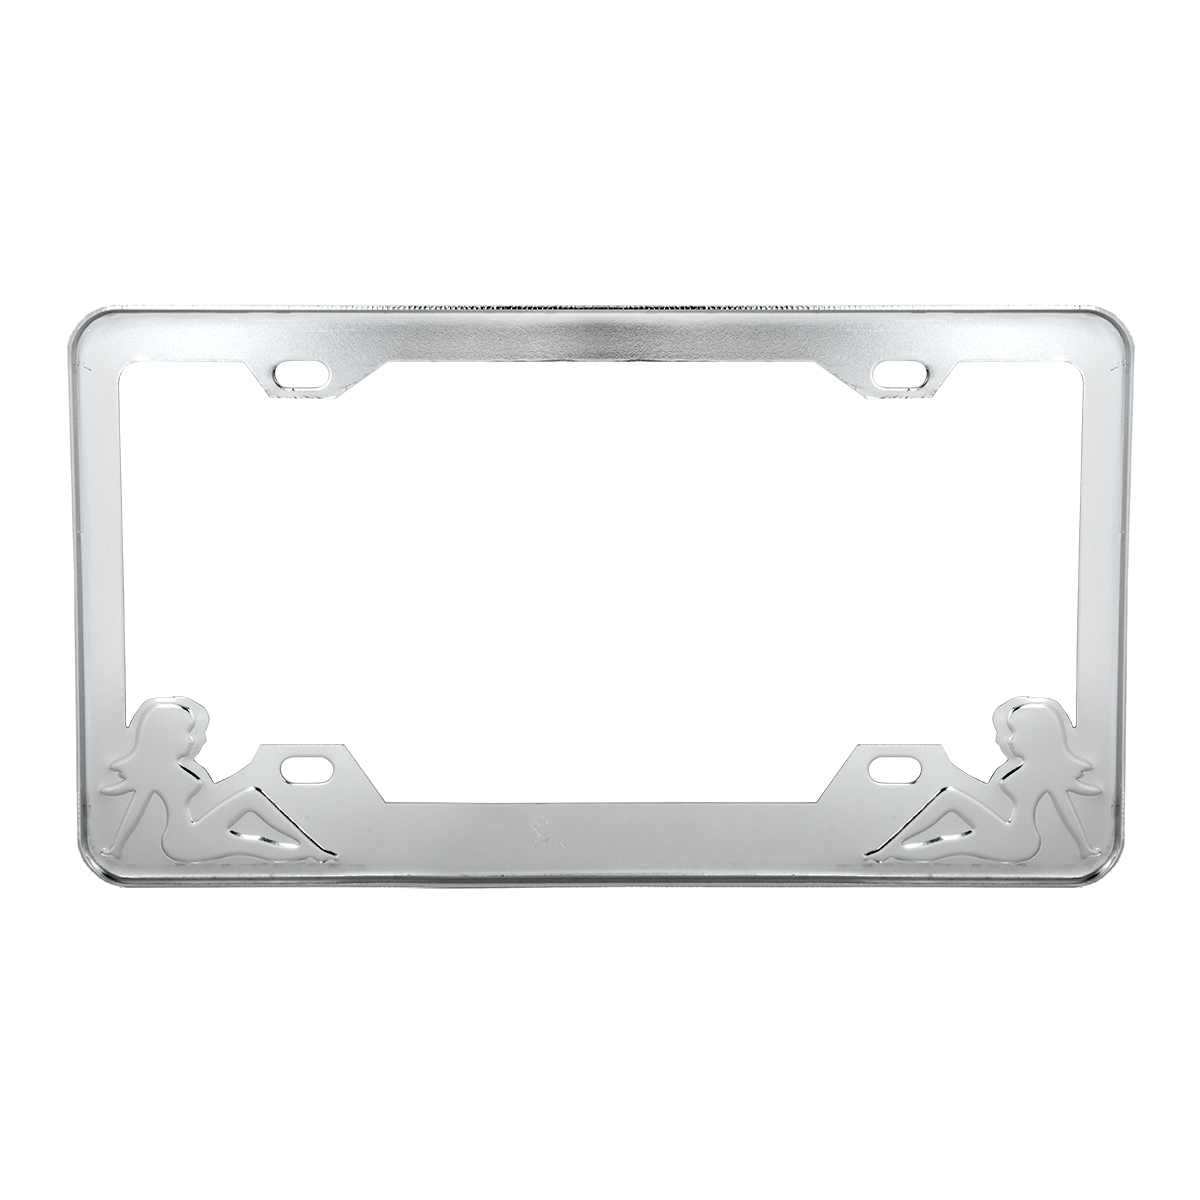 Chrome Plated Steel License Plate Frame with Red Color Sitting Ladies - Back View